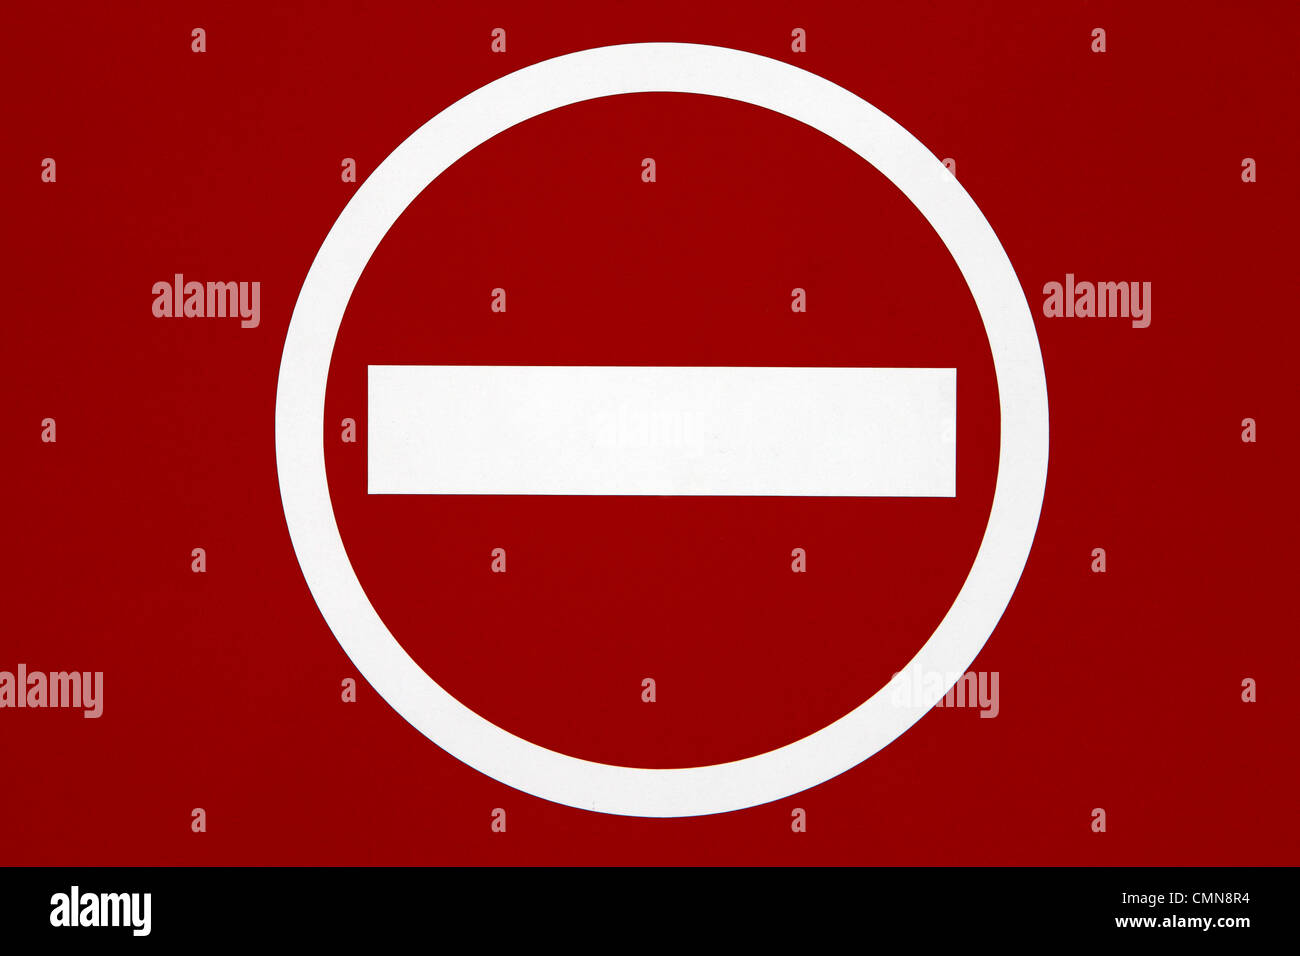 No entry sign on red background - Stock Image